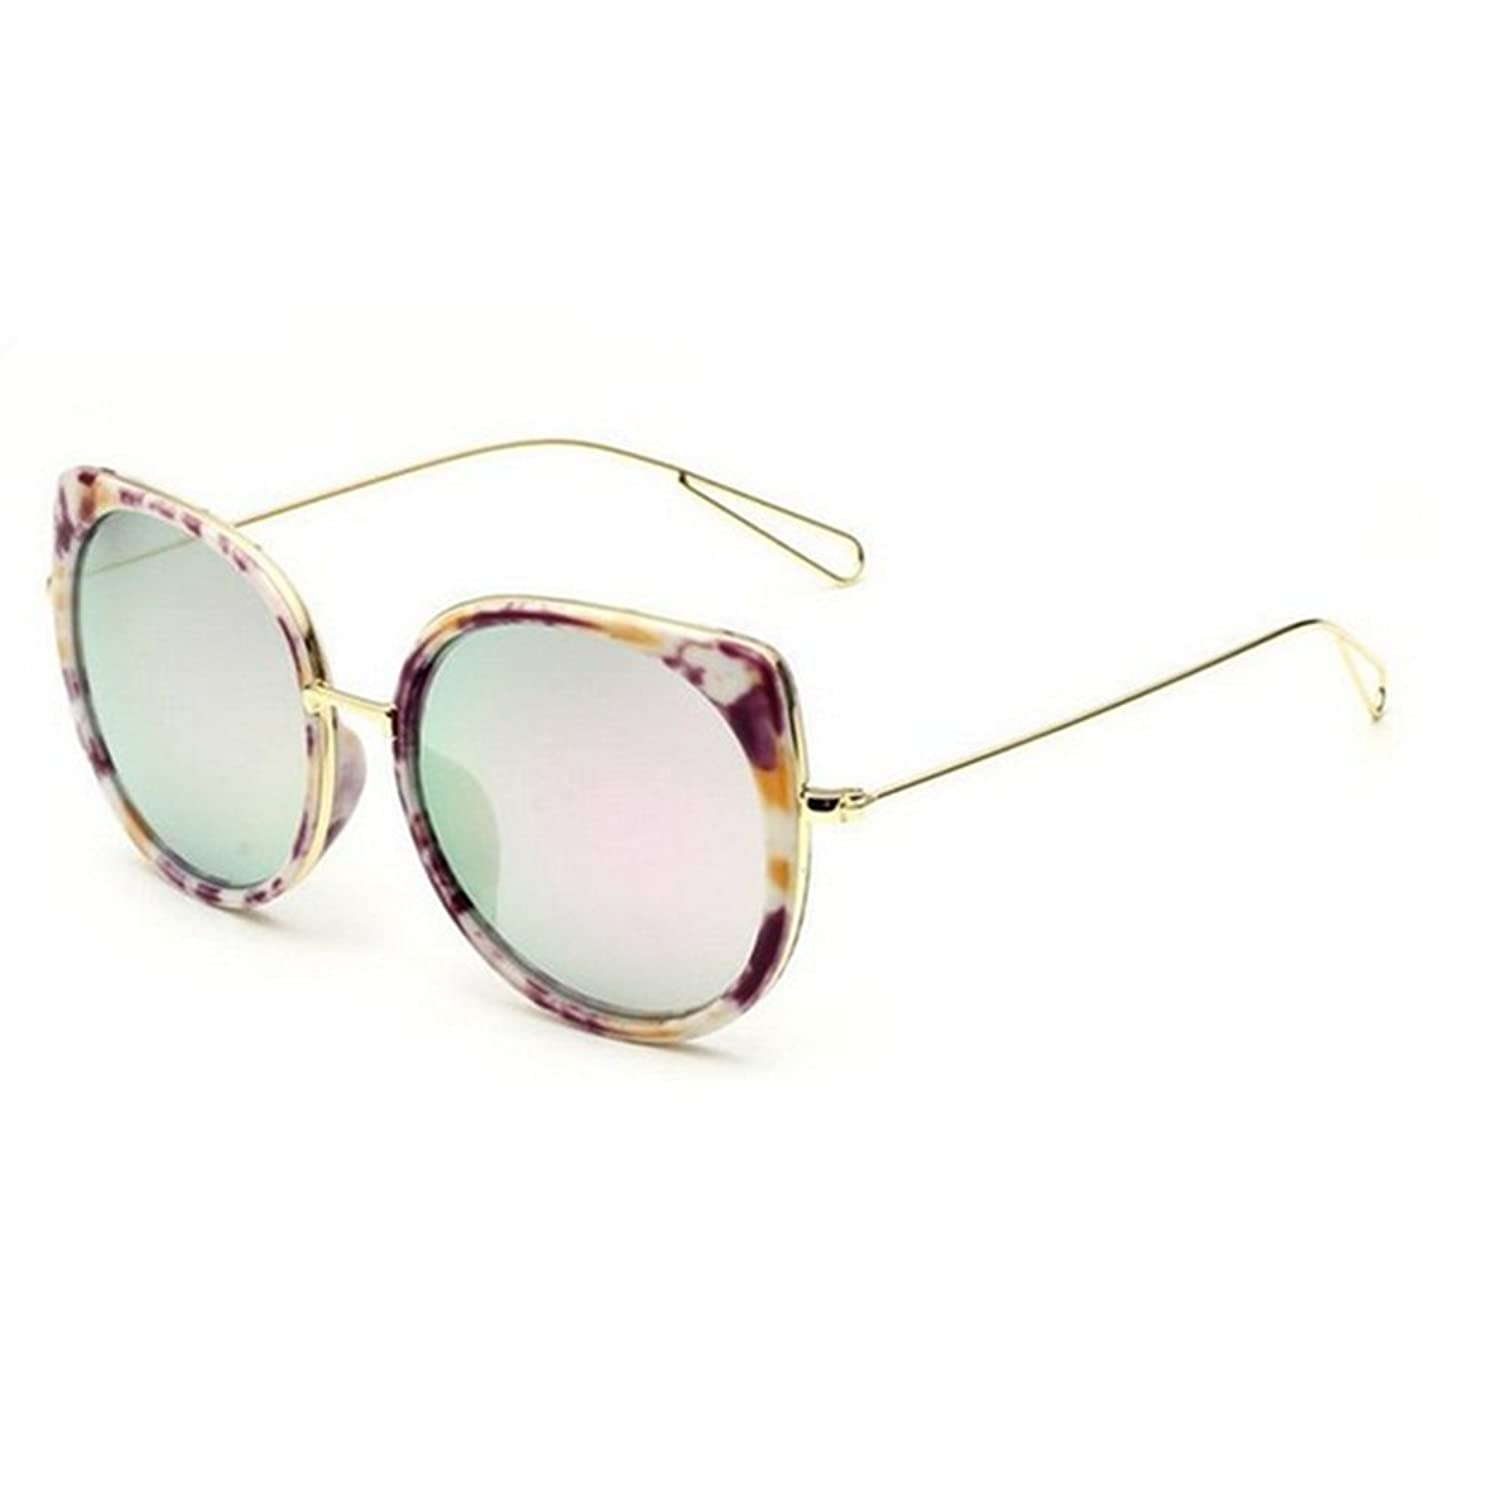 Girls fashion sunglasses color high-definition movie glasses